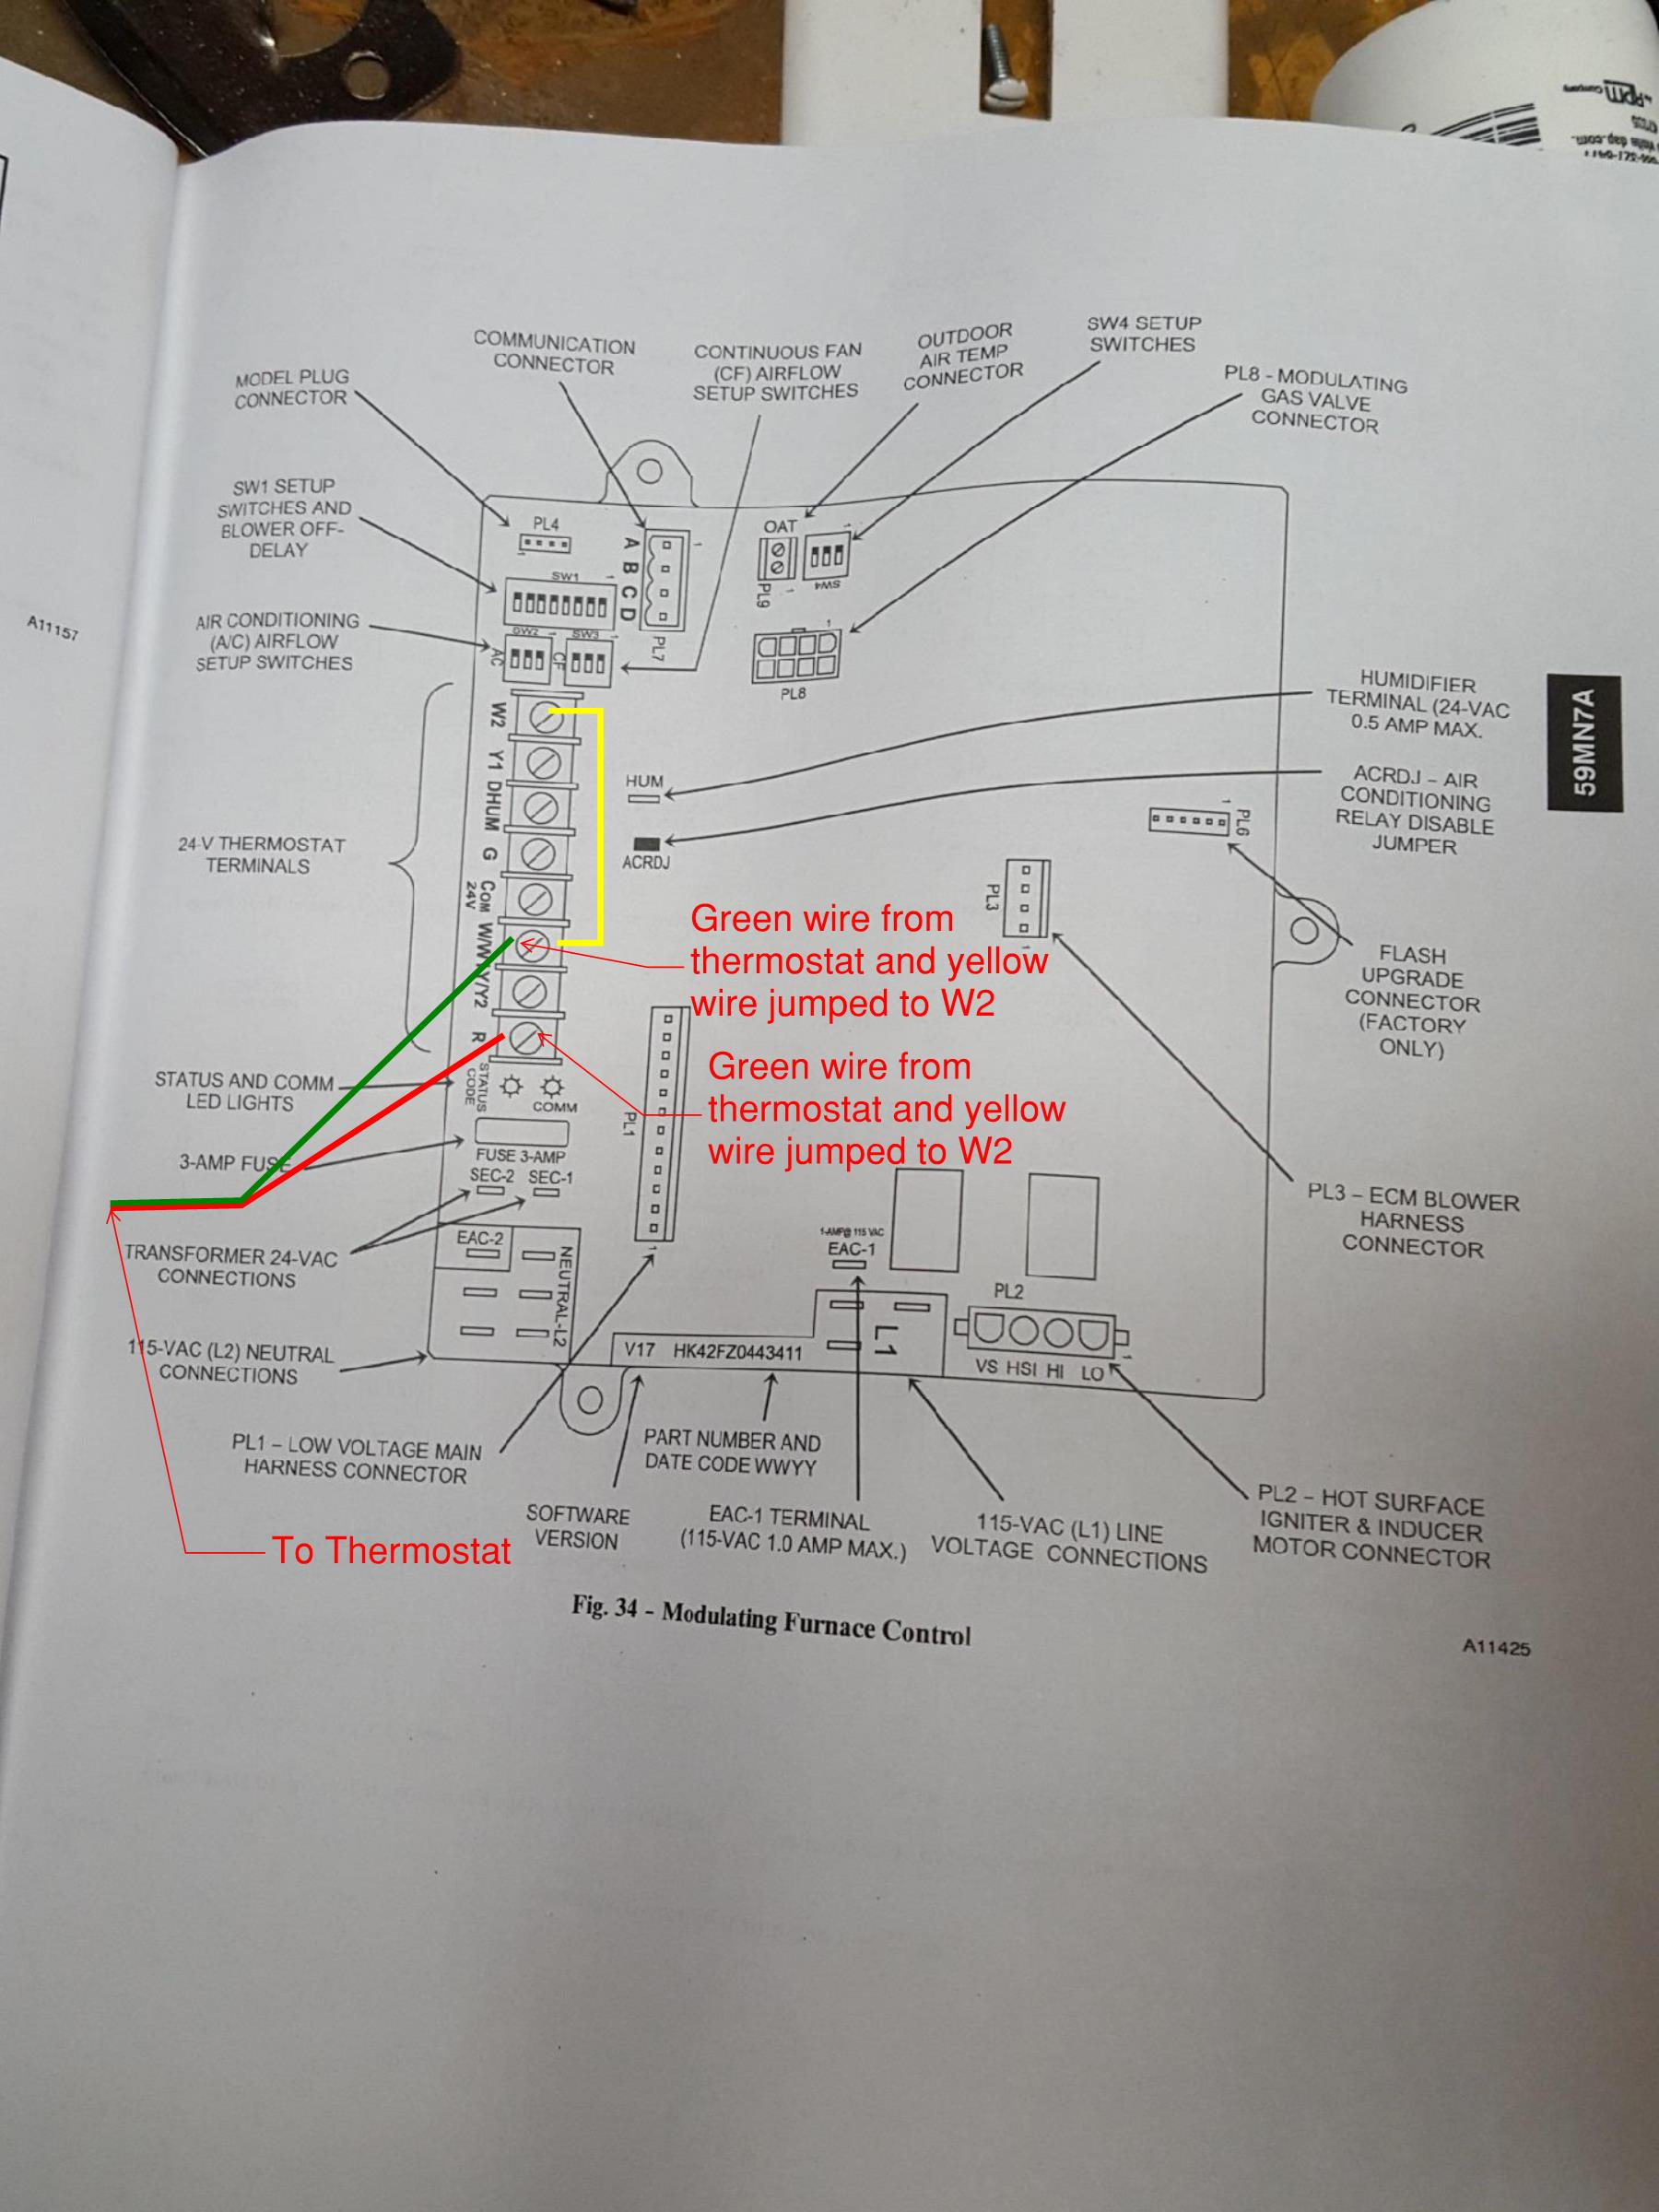 hight resolution of how to hook up new 5 wire hvac cable to newer hvac unit with only 2 wires coming from it with photos